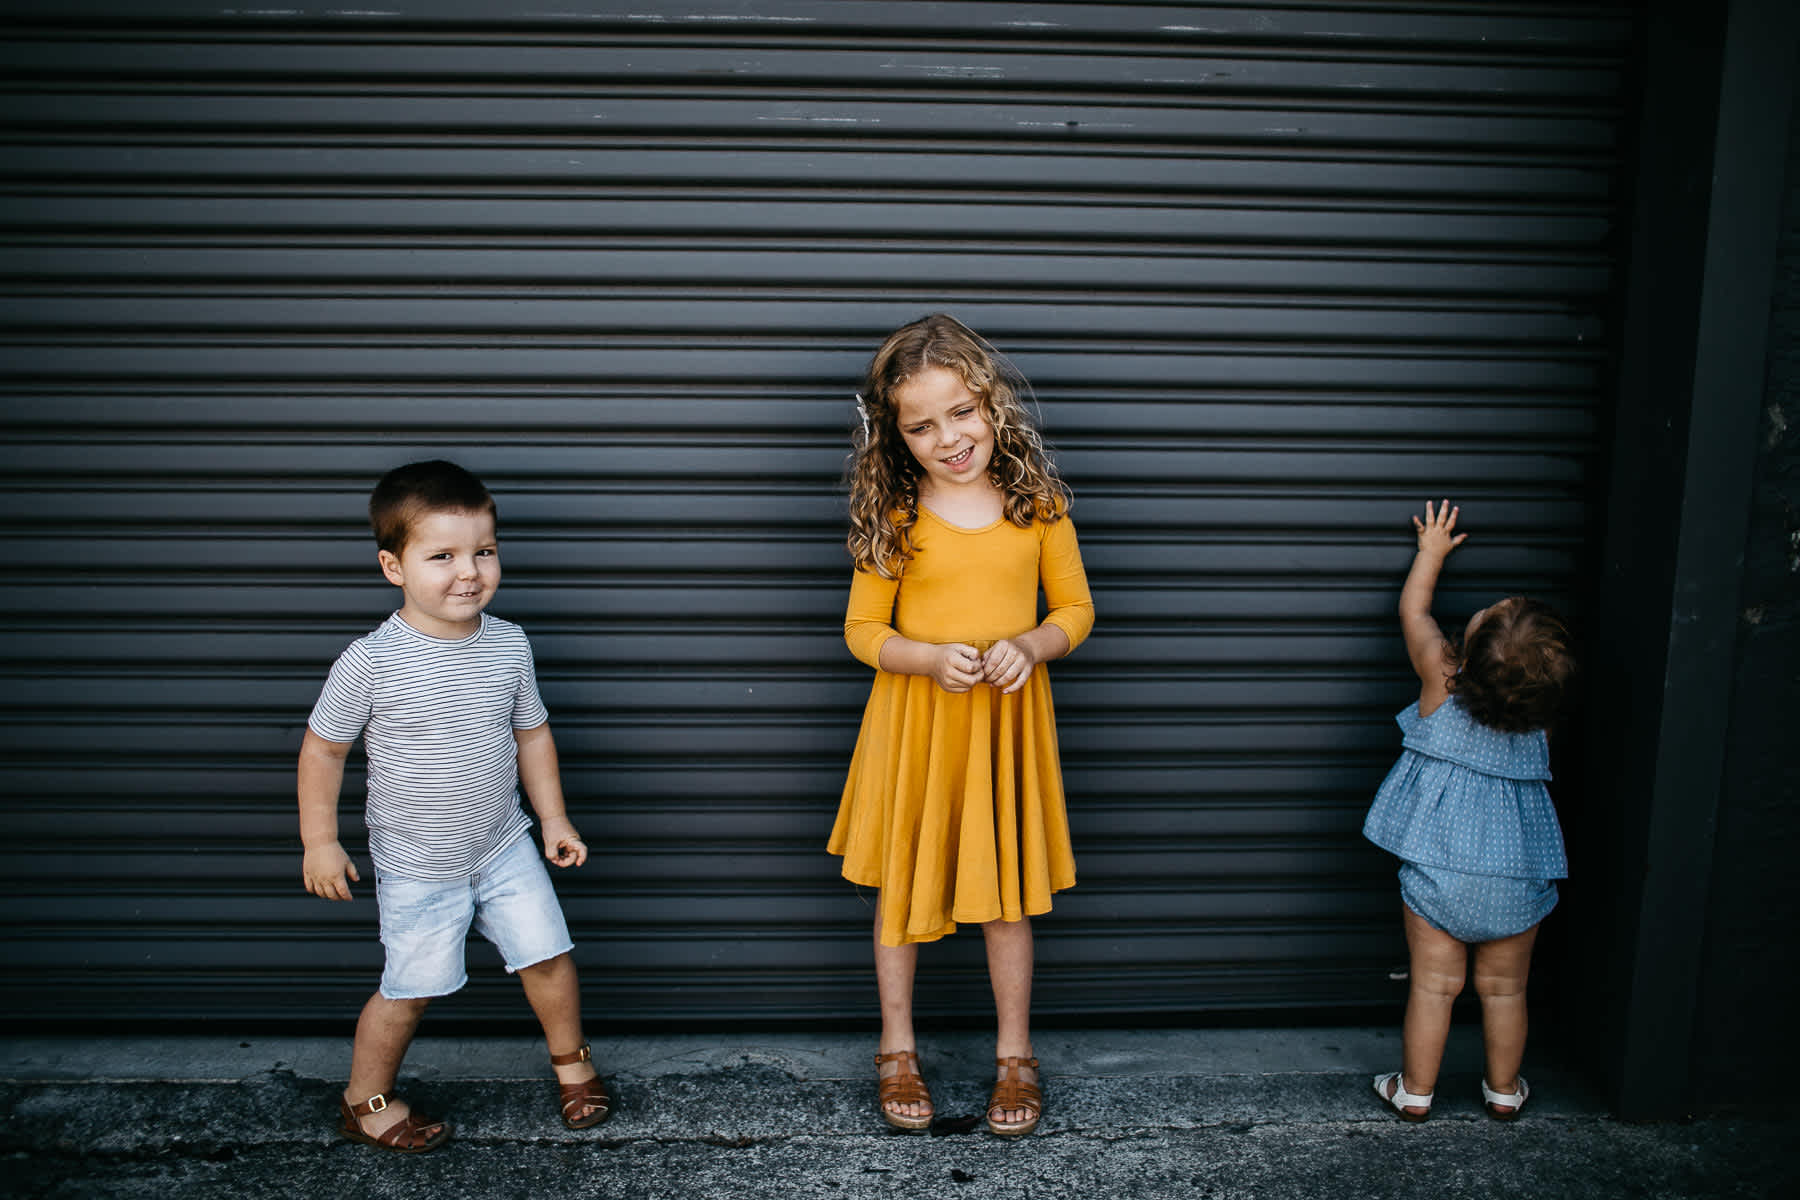 east-bay-san-francisco-urban-family-lifestyle-session-29